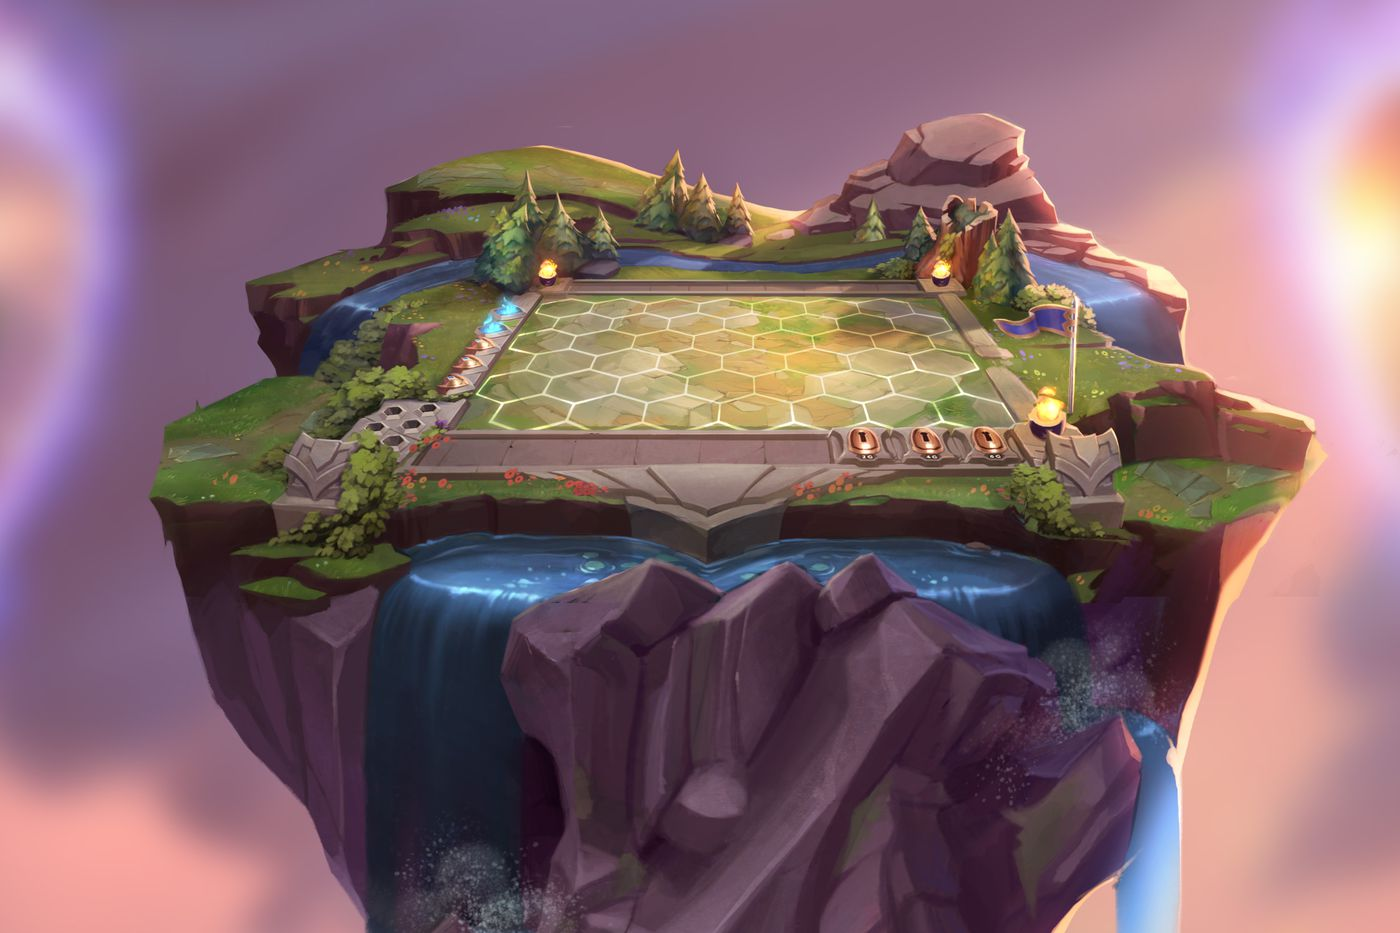 Teamfight Tactics one-ups Auto Chess by being more fun with friends -  Polygon